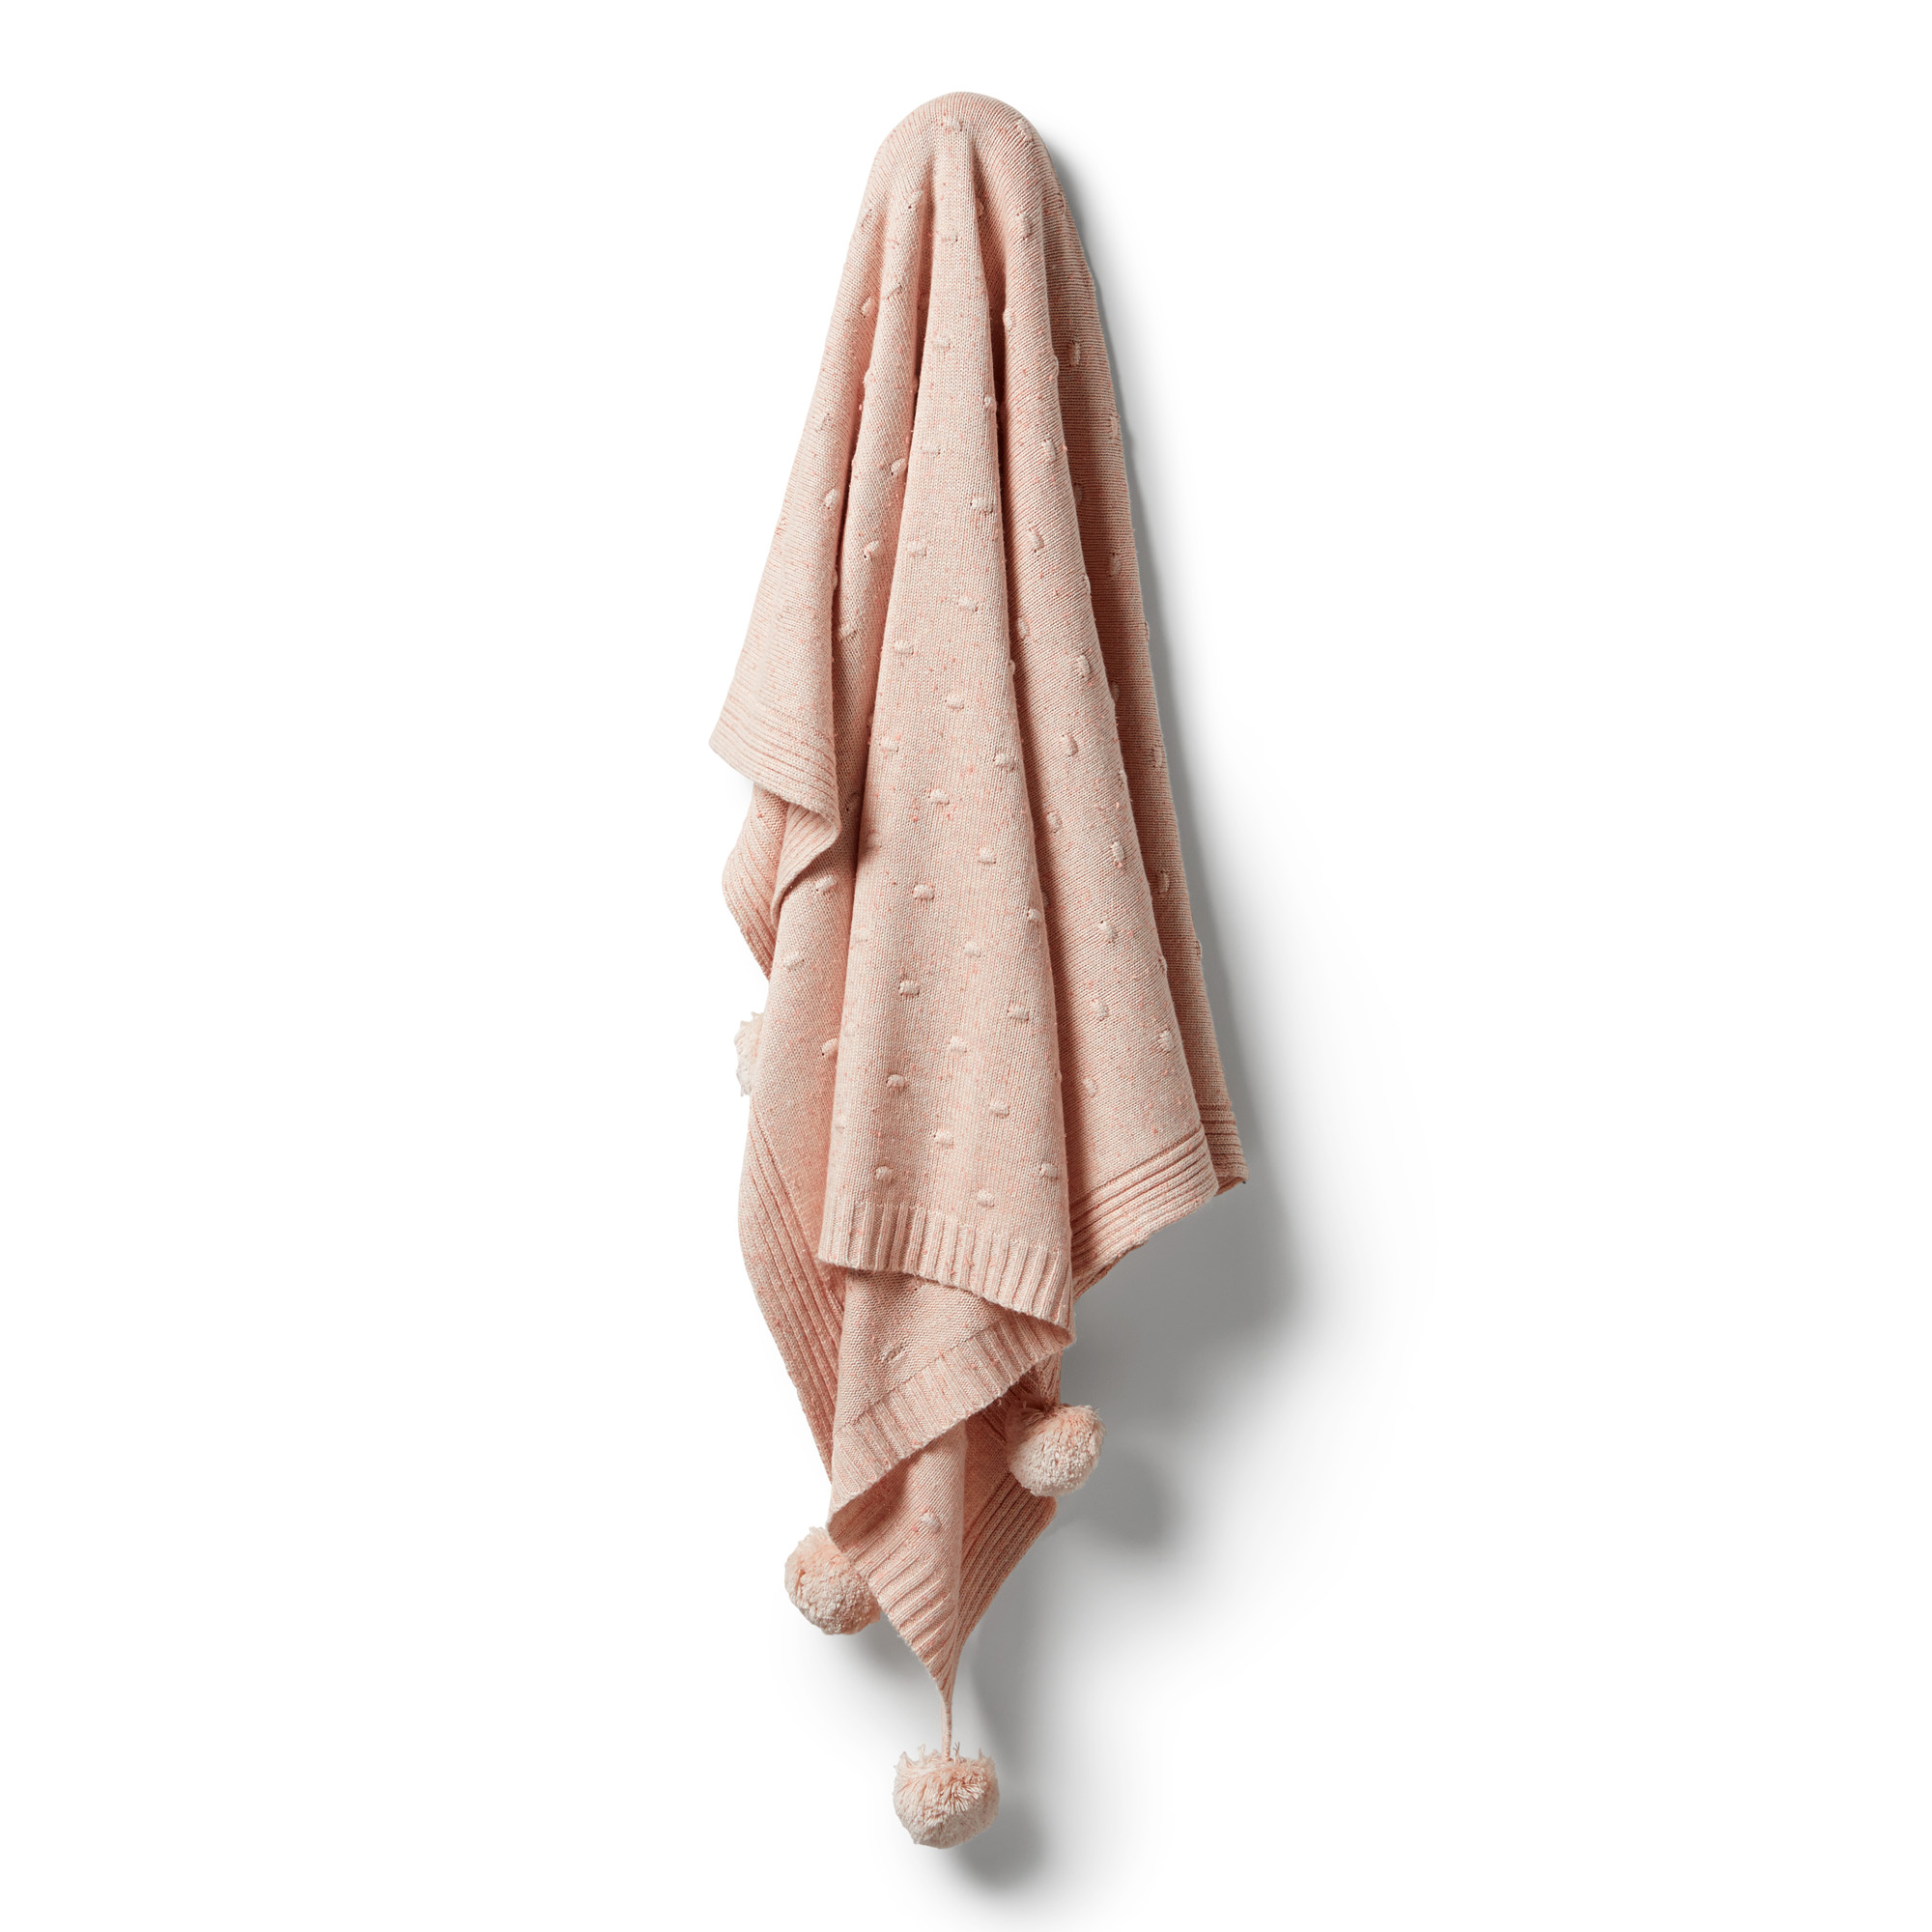 Wilson and Frenchy Knitted Spot Jacquard Blanket (flamingo oatmeal fleck)